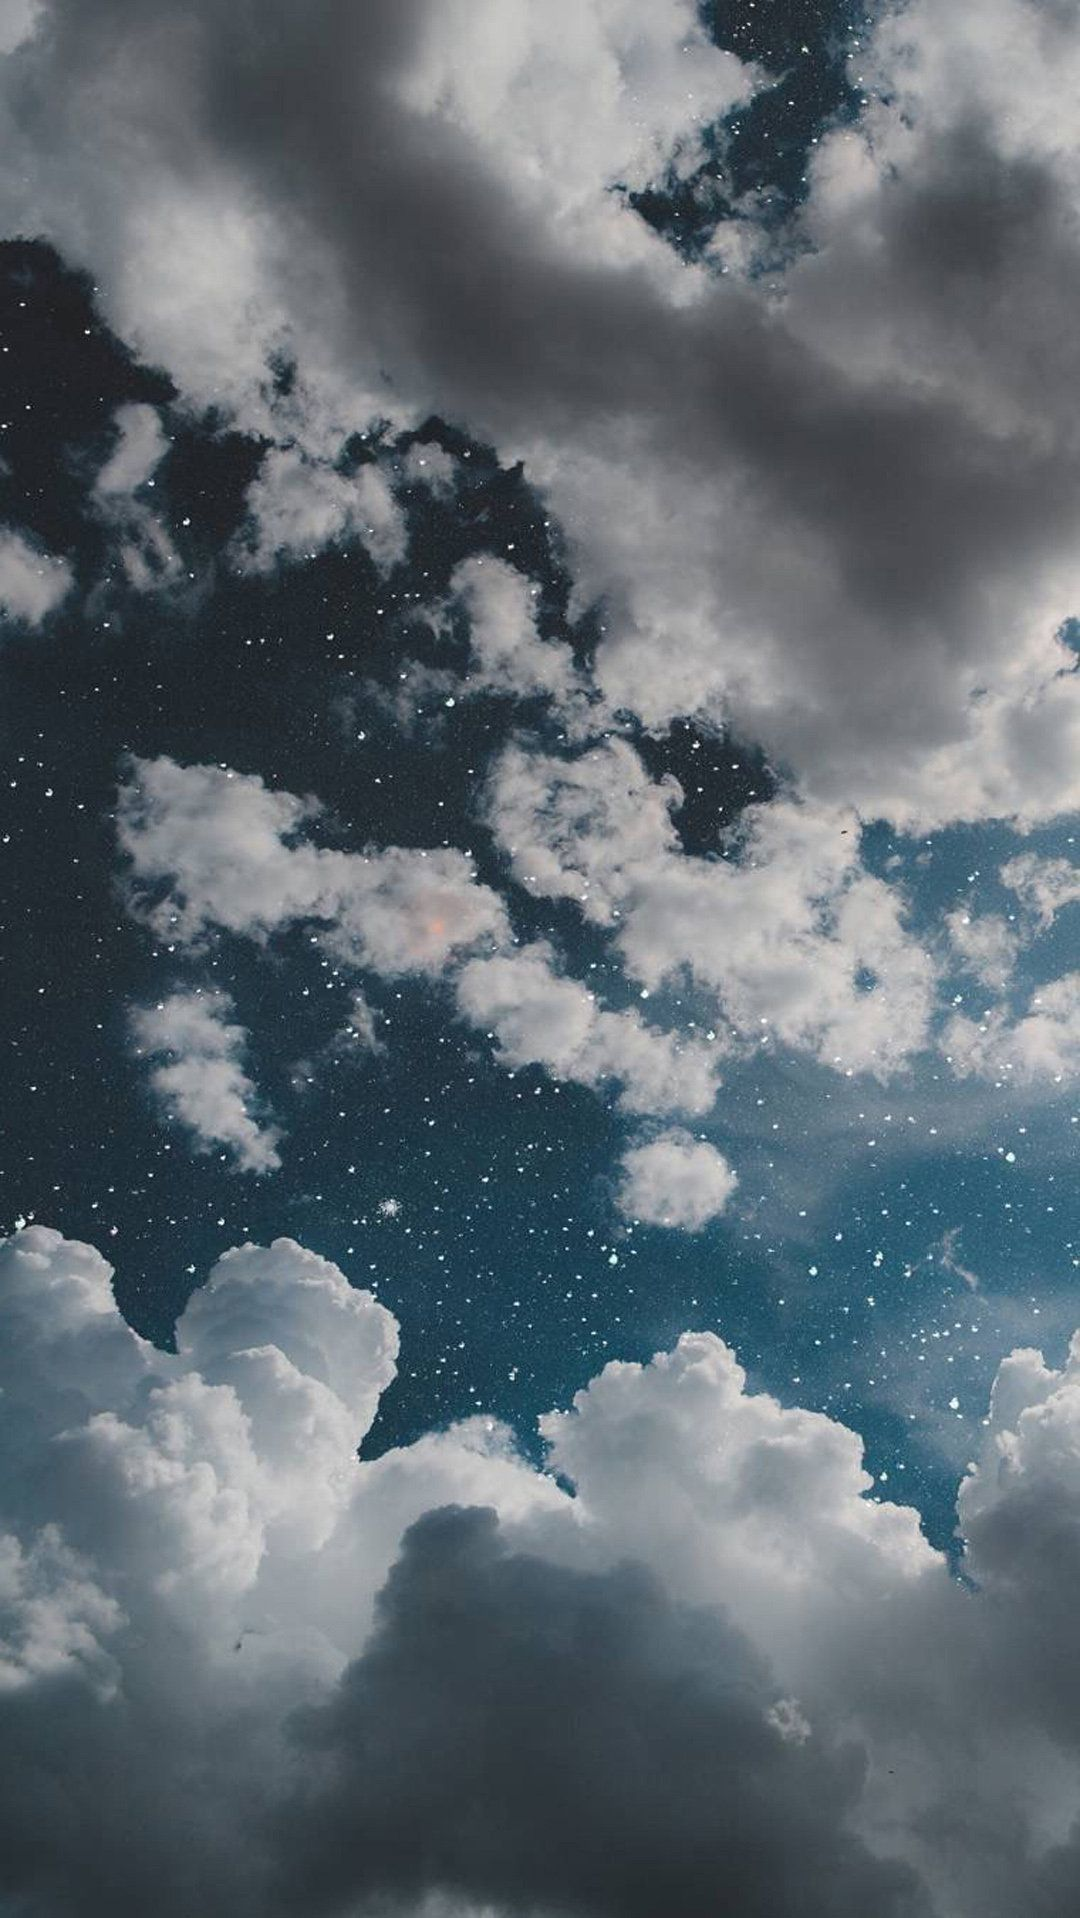 Aesthetic Clouds In 2020 Phone Wallpaper Star Wallpaper Aesthetic Wallpapers